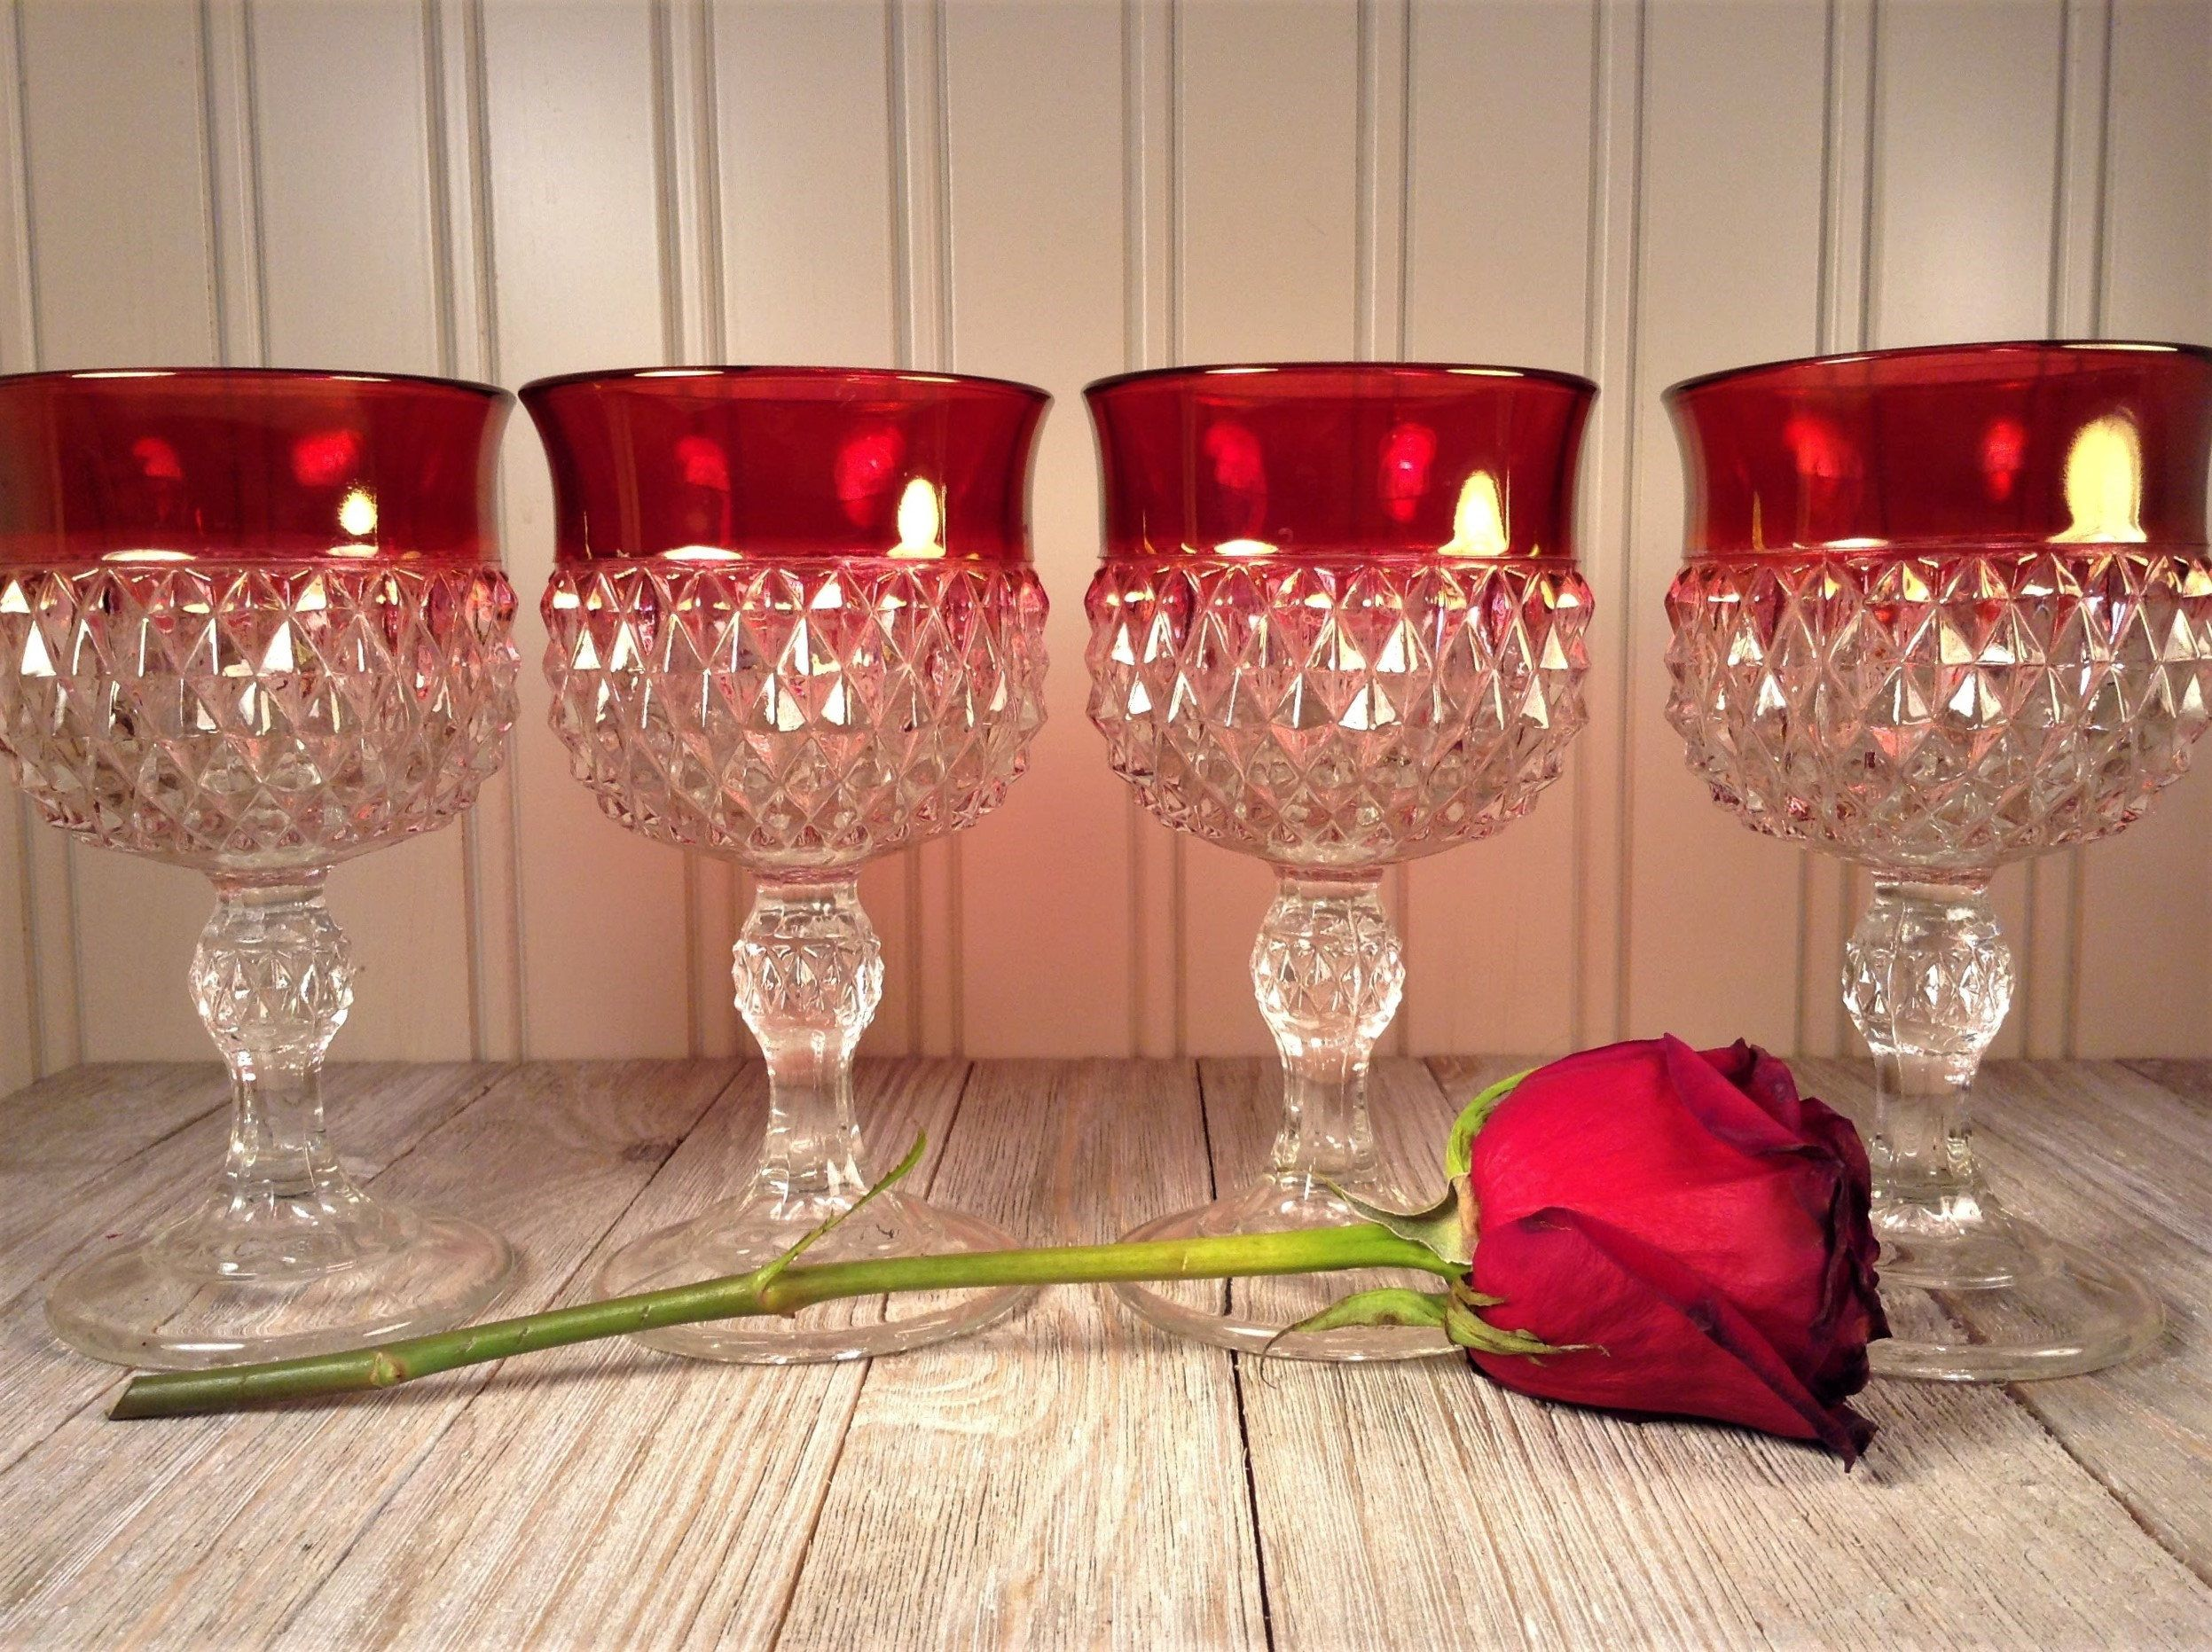 Vintage Red Wine Glasses Set Of 4 Ruby Band Diamond Point Stemware Indiana Glass Ruby Red Flash Diam Vintage Wine Glasses Vintage Wine Glass Red Wine Glasses